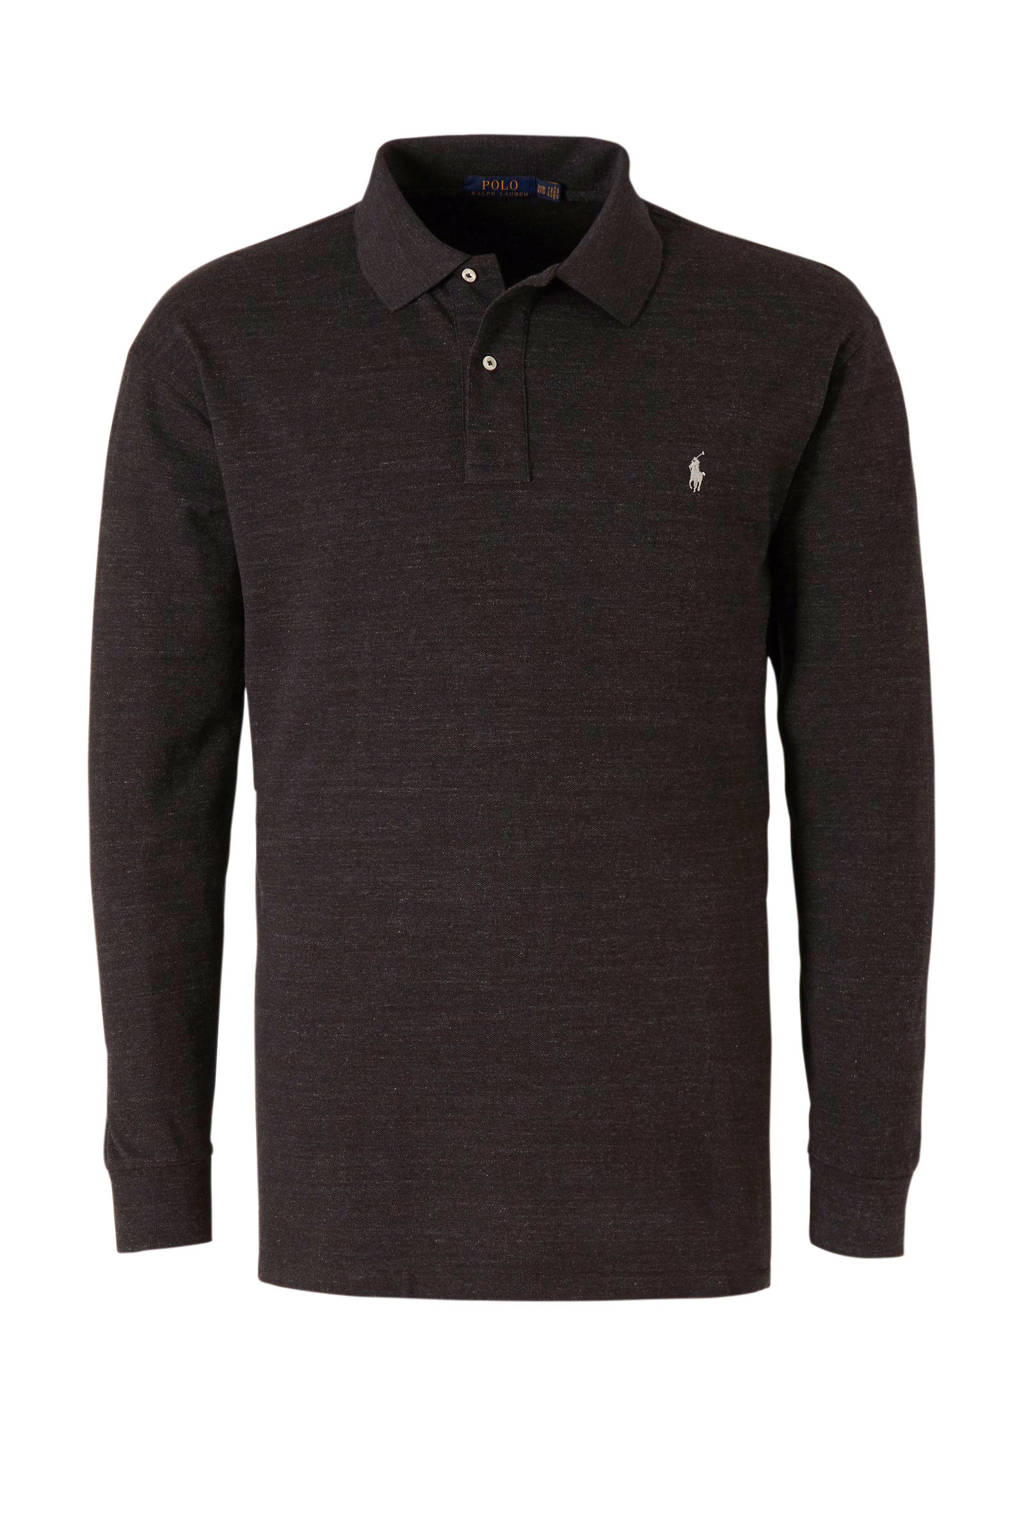 POLO Ralph Lauren Big & Tall +size gemêleerde regular fit polo zwart, Zwart